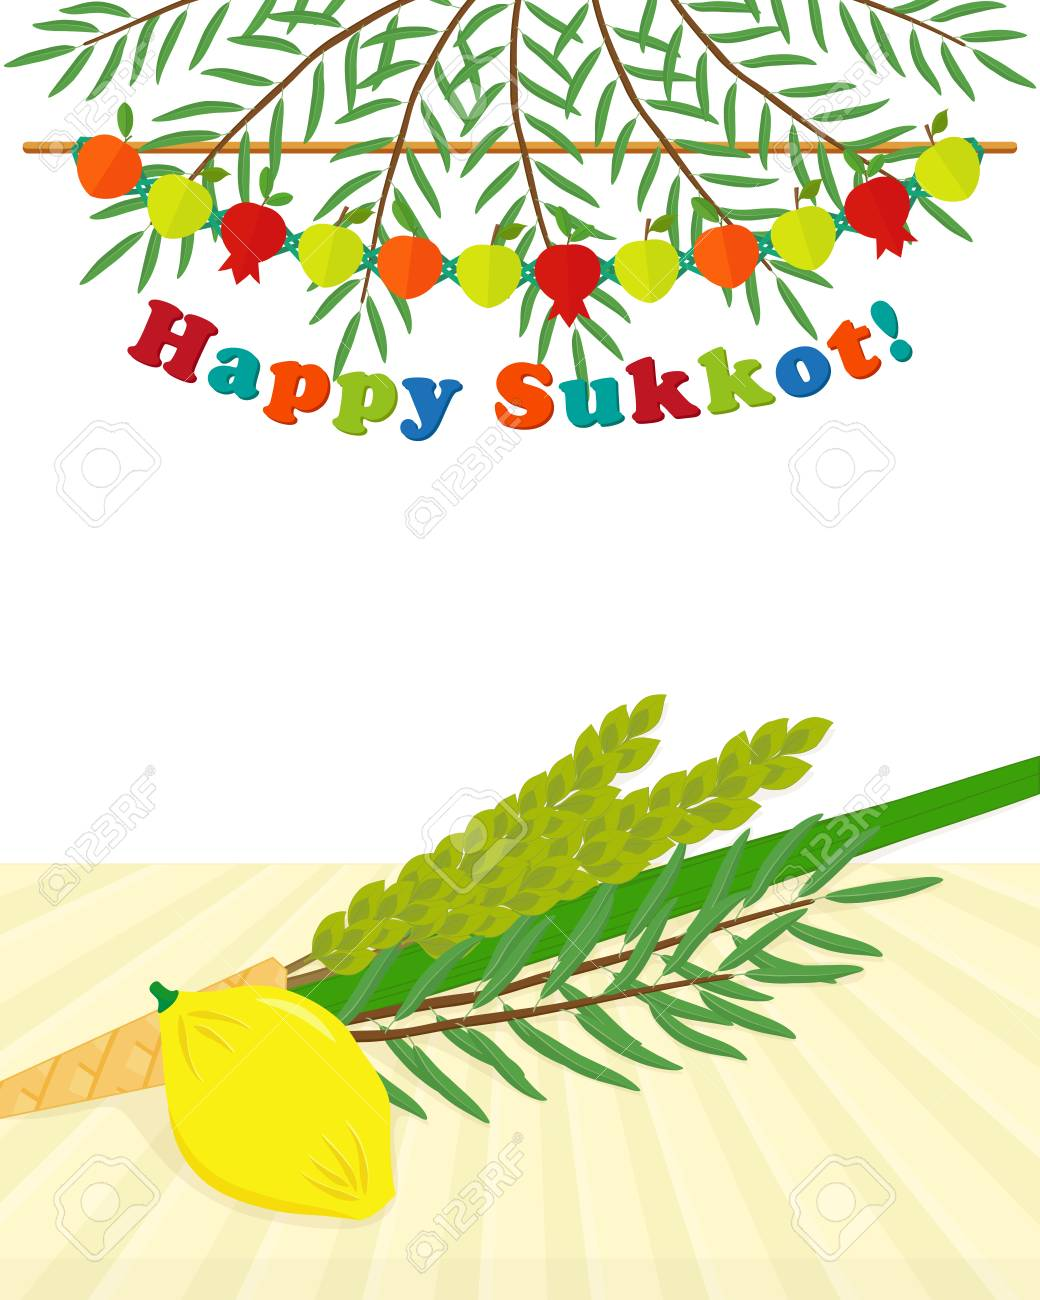 Greeting card with four species etrog lulav hadass aravah greeting card with four species etrog lulav hadass aravah symbols of m4hsunfo